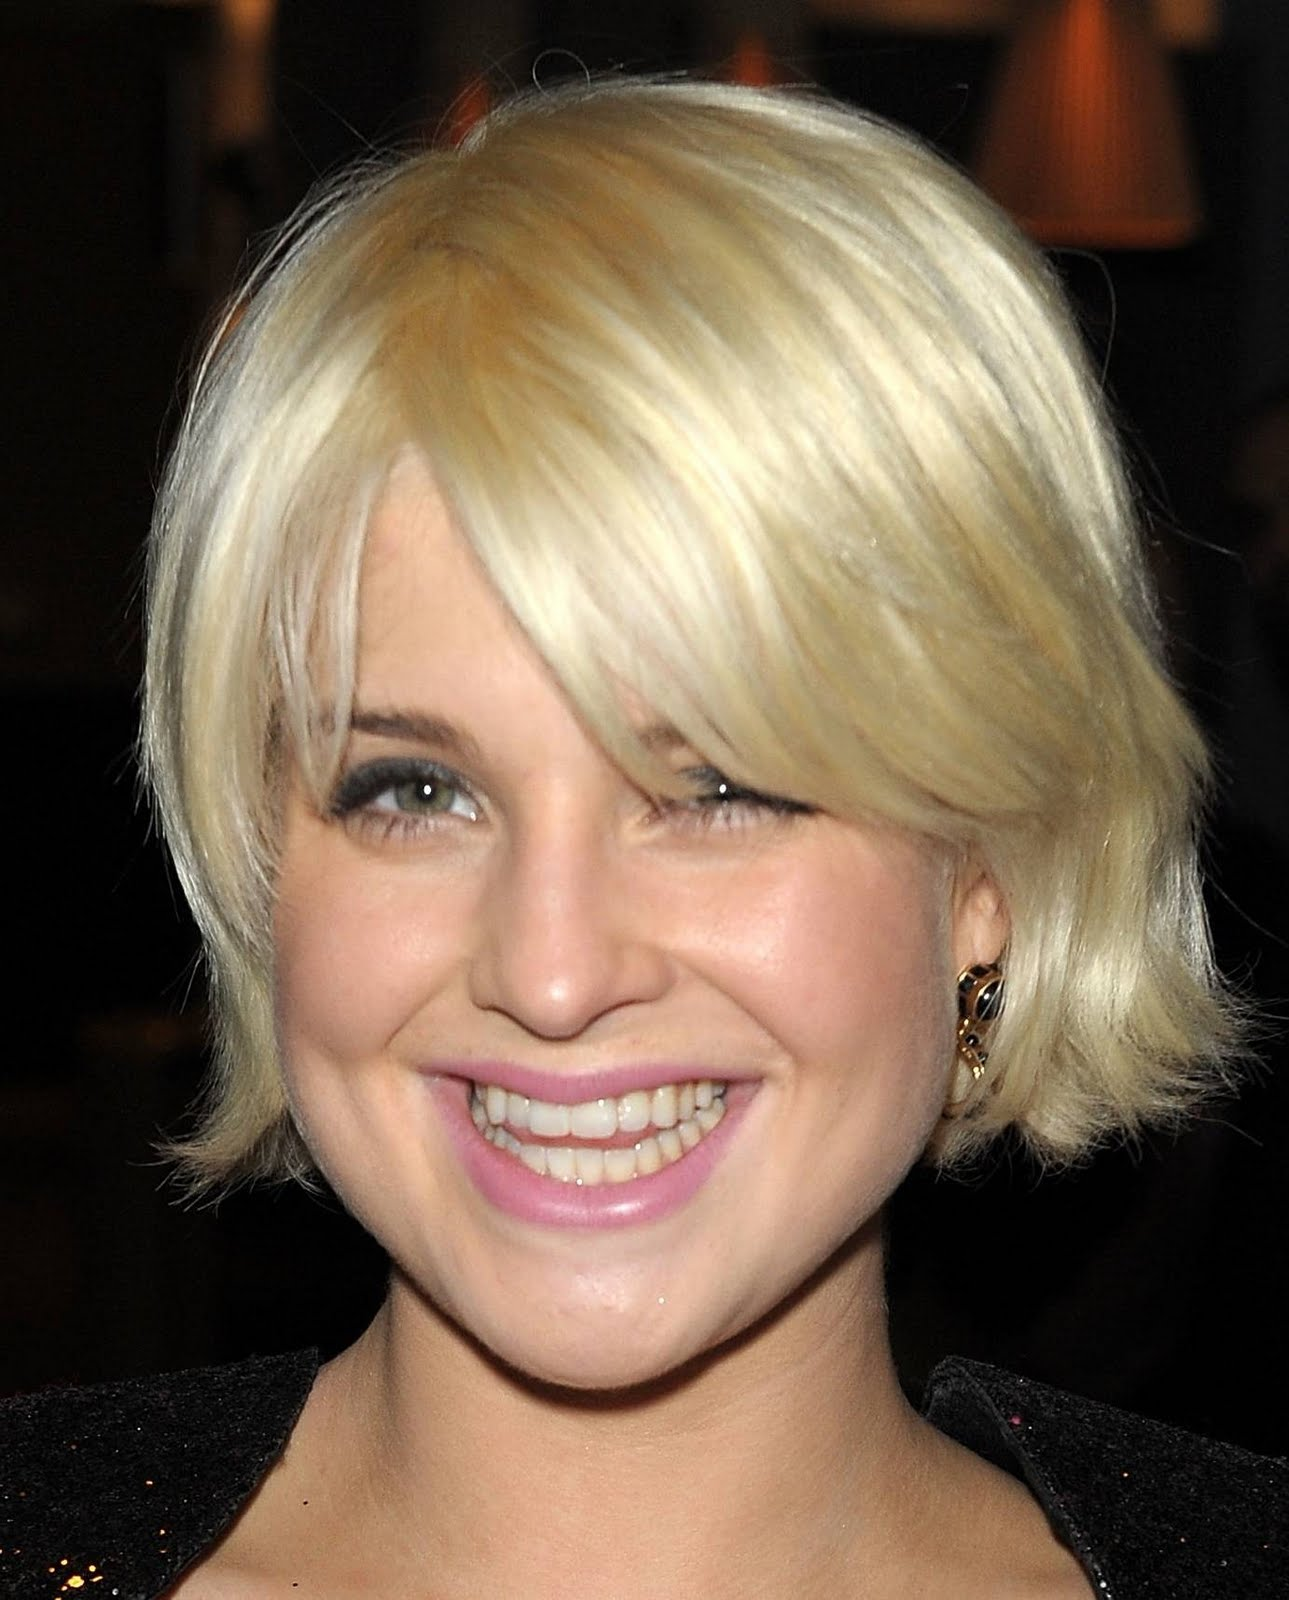 Haircut Styles: Short Blonde Straight Hairstyles